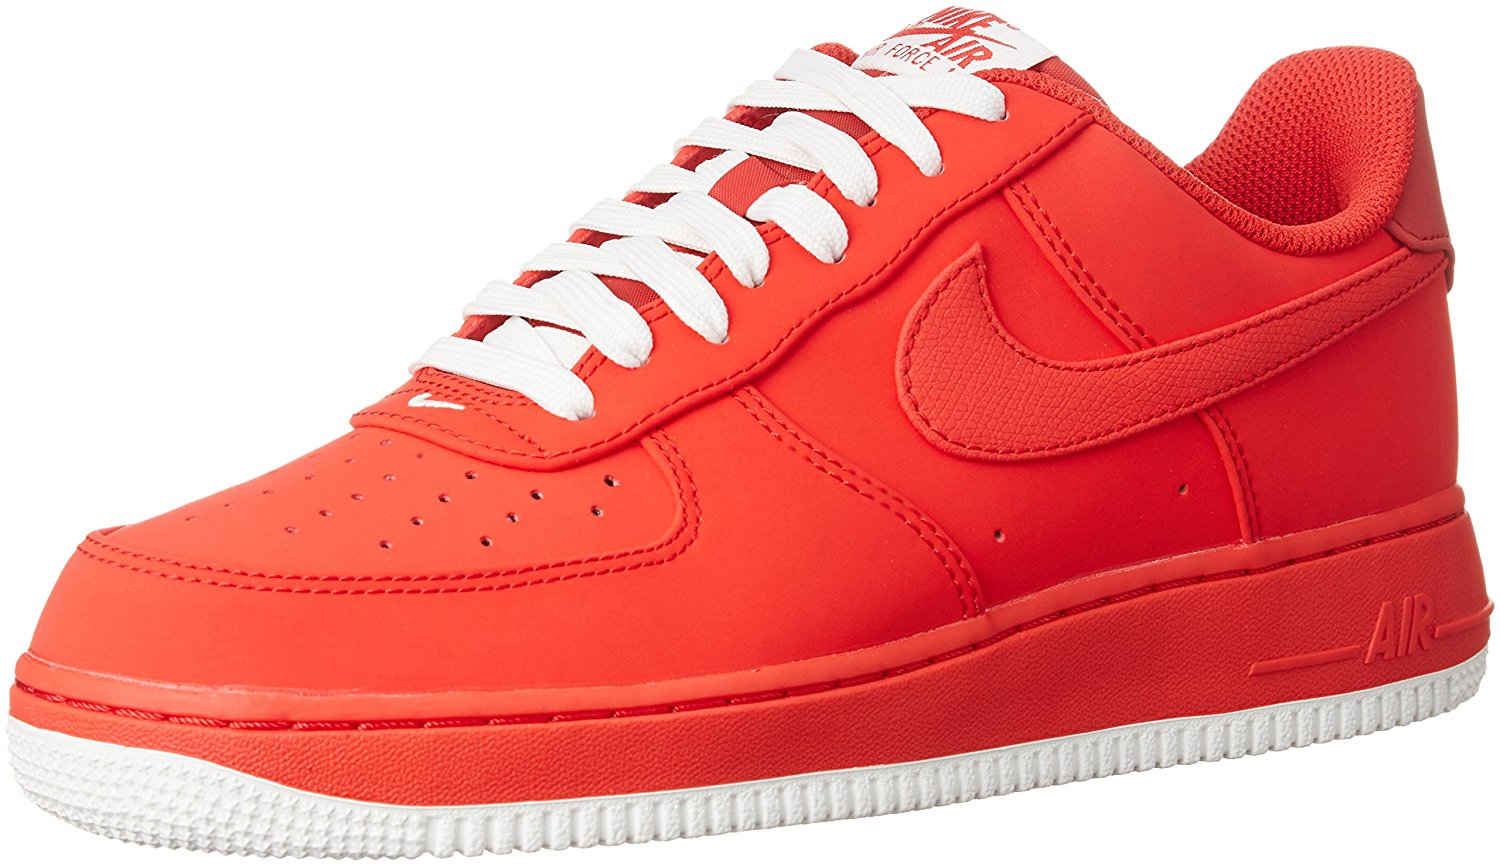 separation shoes 1b898 71e1b Get Quotations · Nike Mens Air Force 1 Low Leather Basketball Shoes